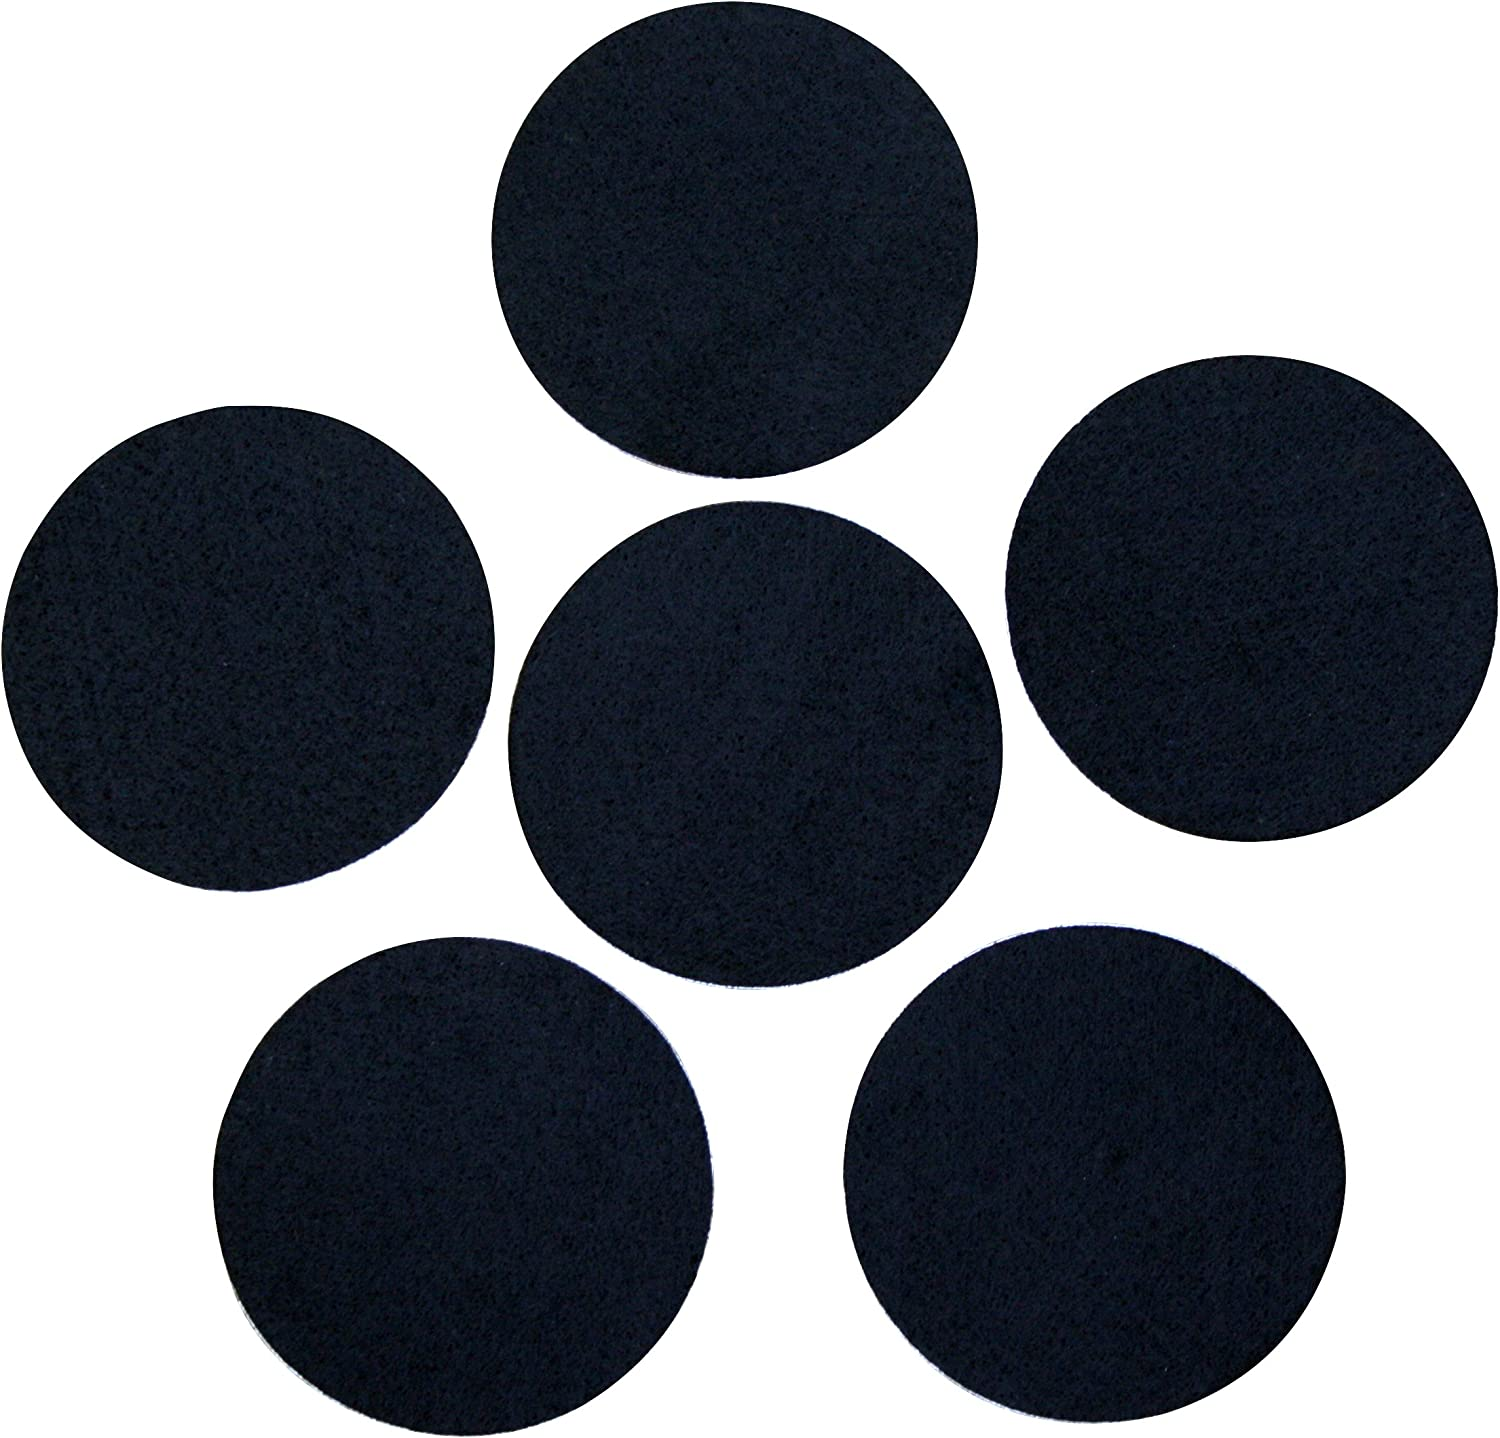 Professional Craft Finishing 3 Black Adhesive Felt Circles 2 inch Single Package of 10, 4 Inch Circles Self Stick Die Cut; DIY Projects 4 or 5 Wide